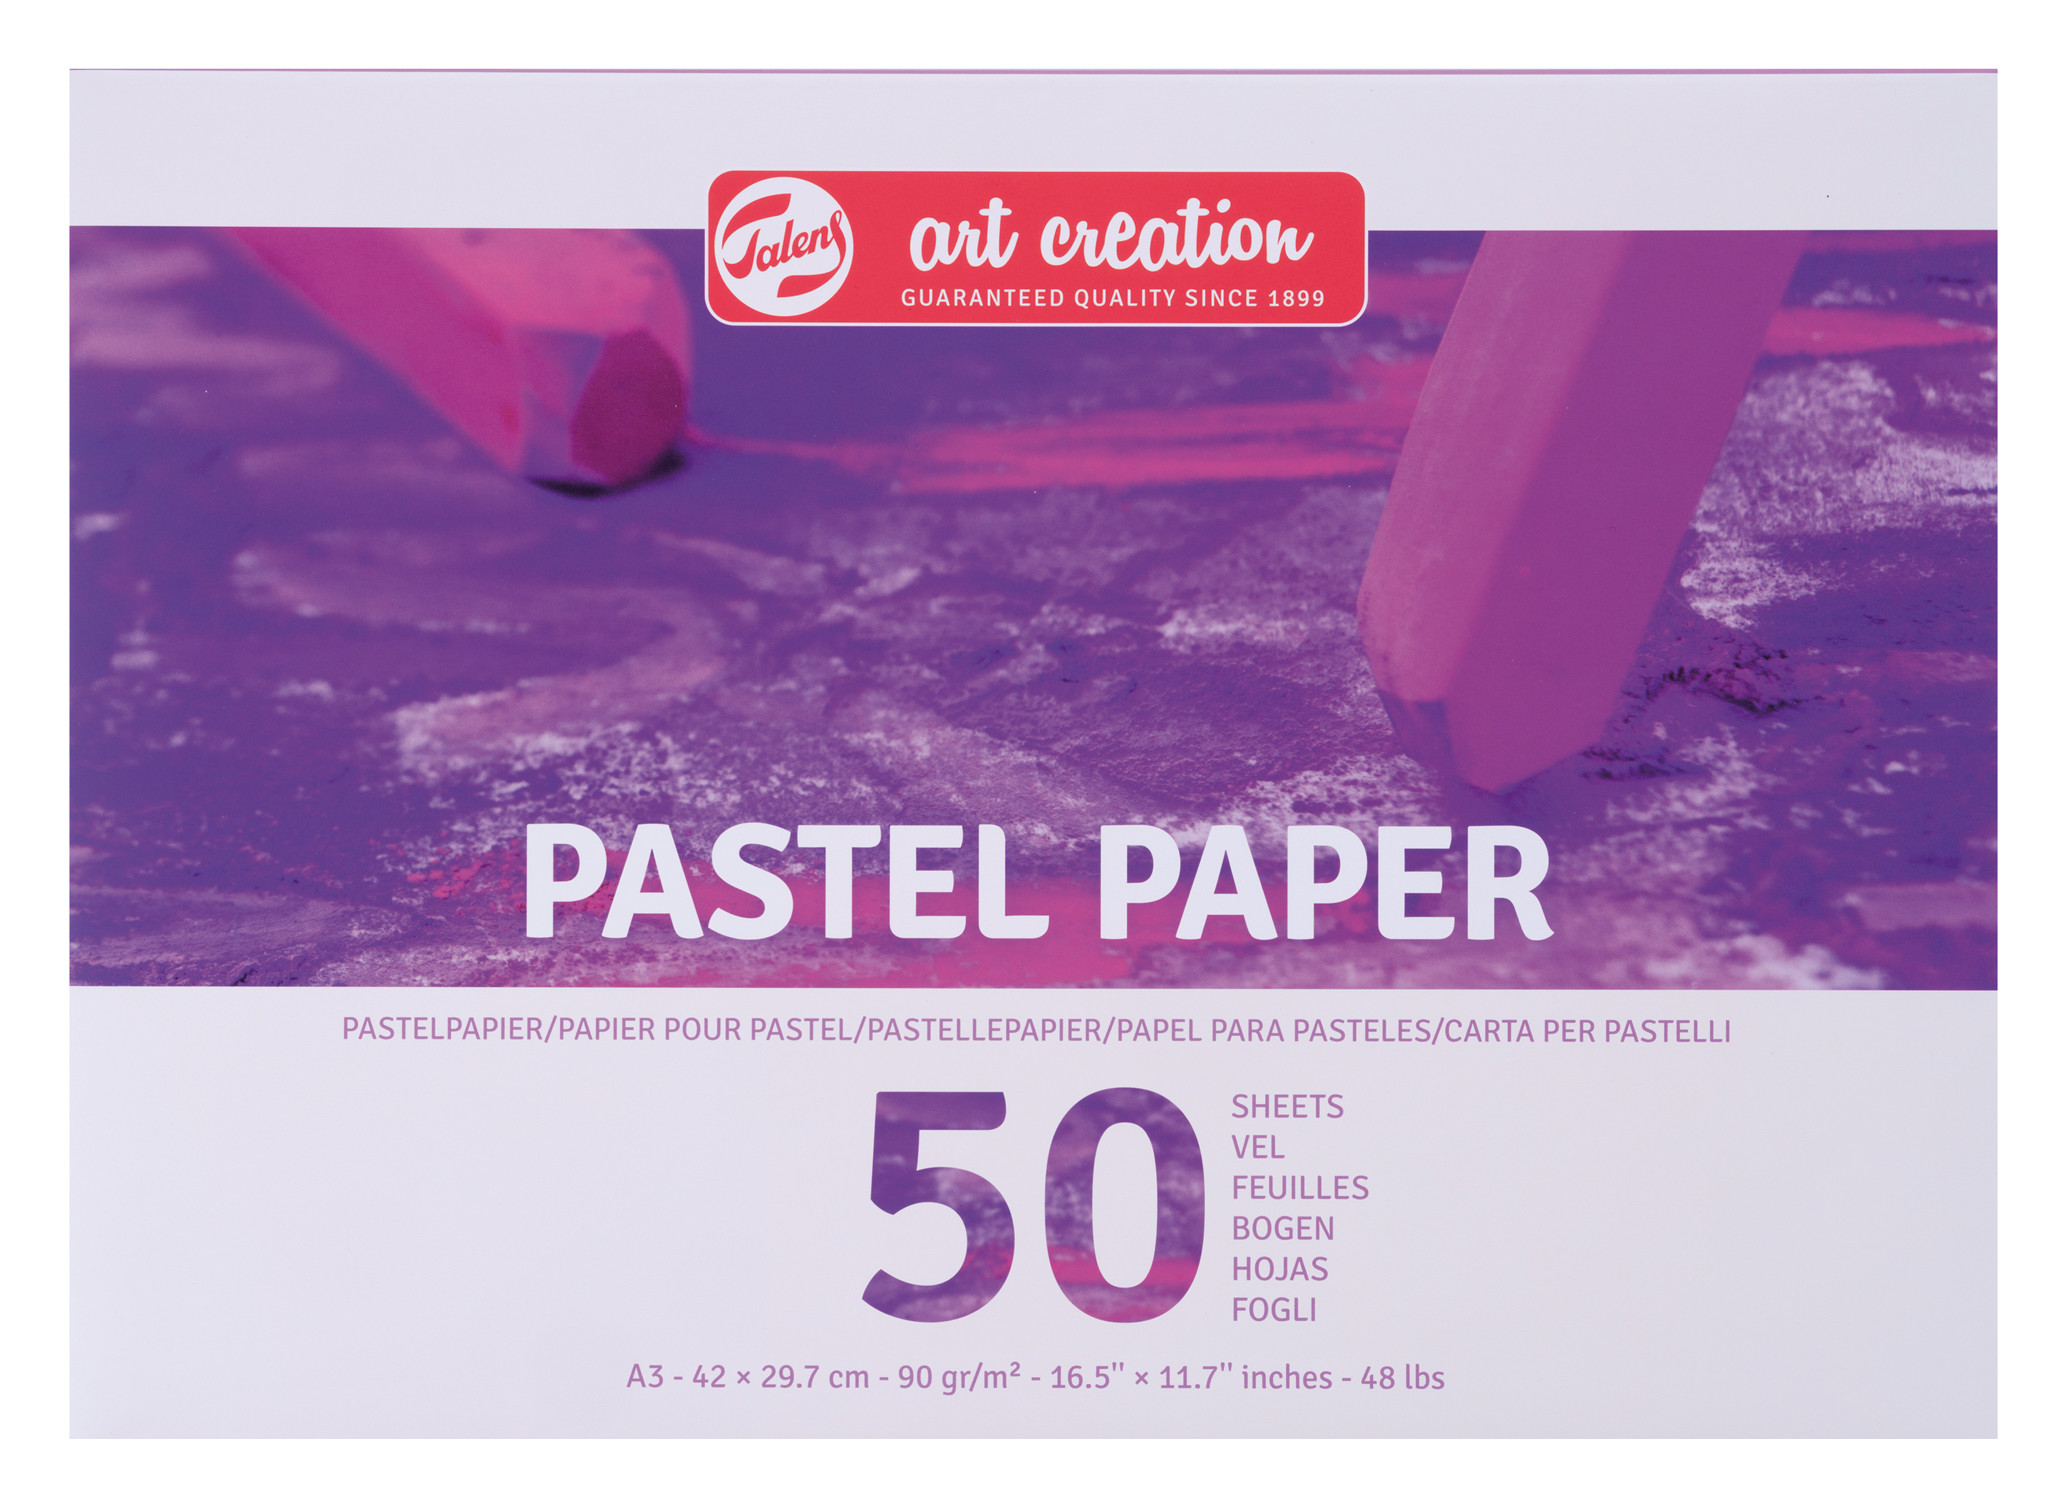 Talens Art Creation Pastel Paper A3, 100G, 50 Pages